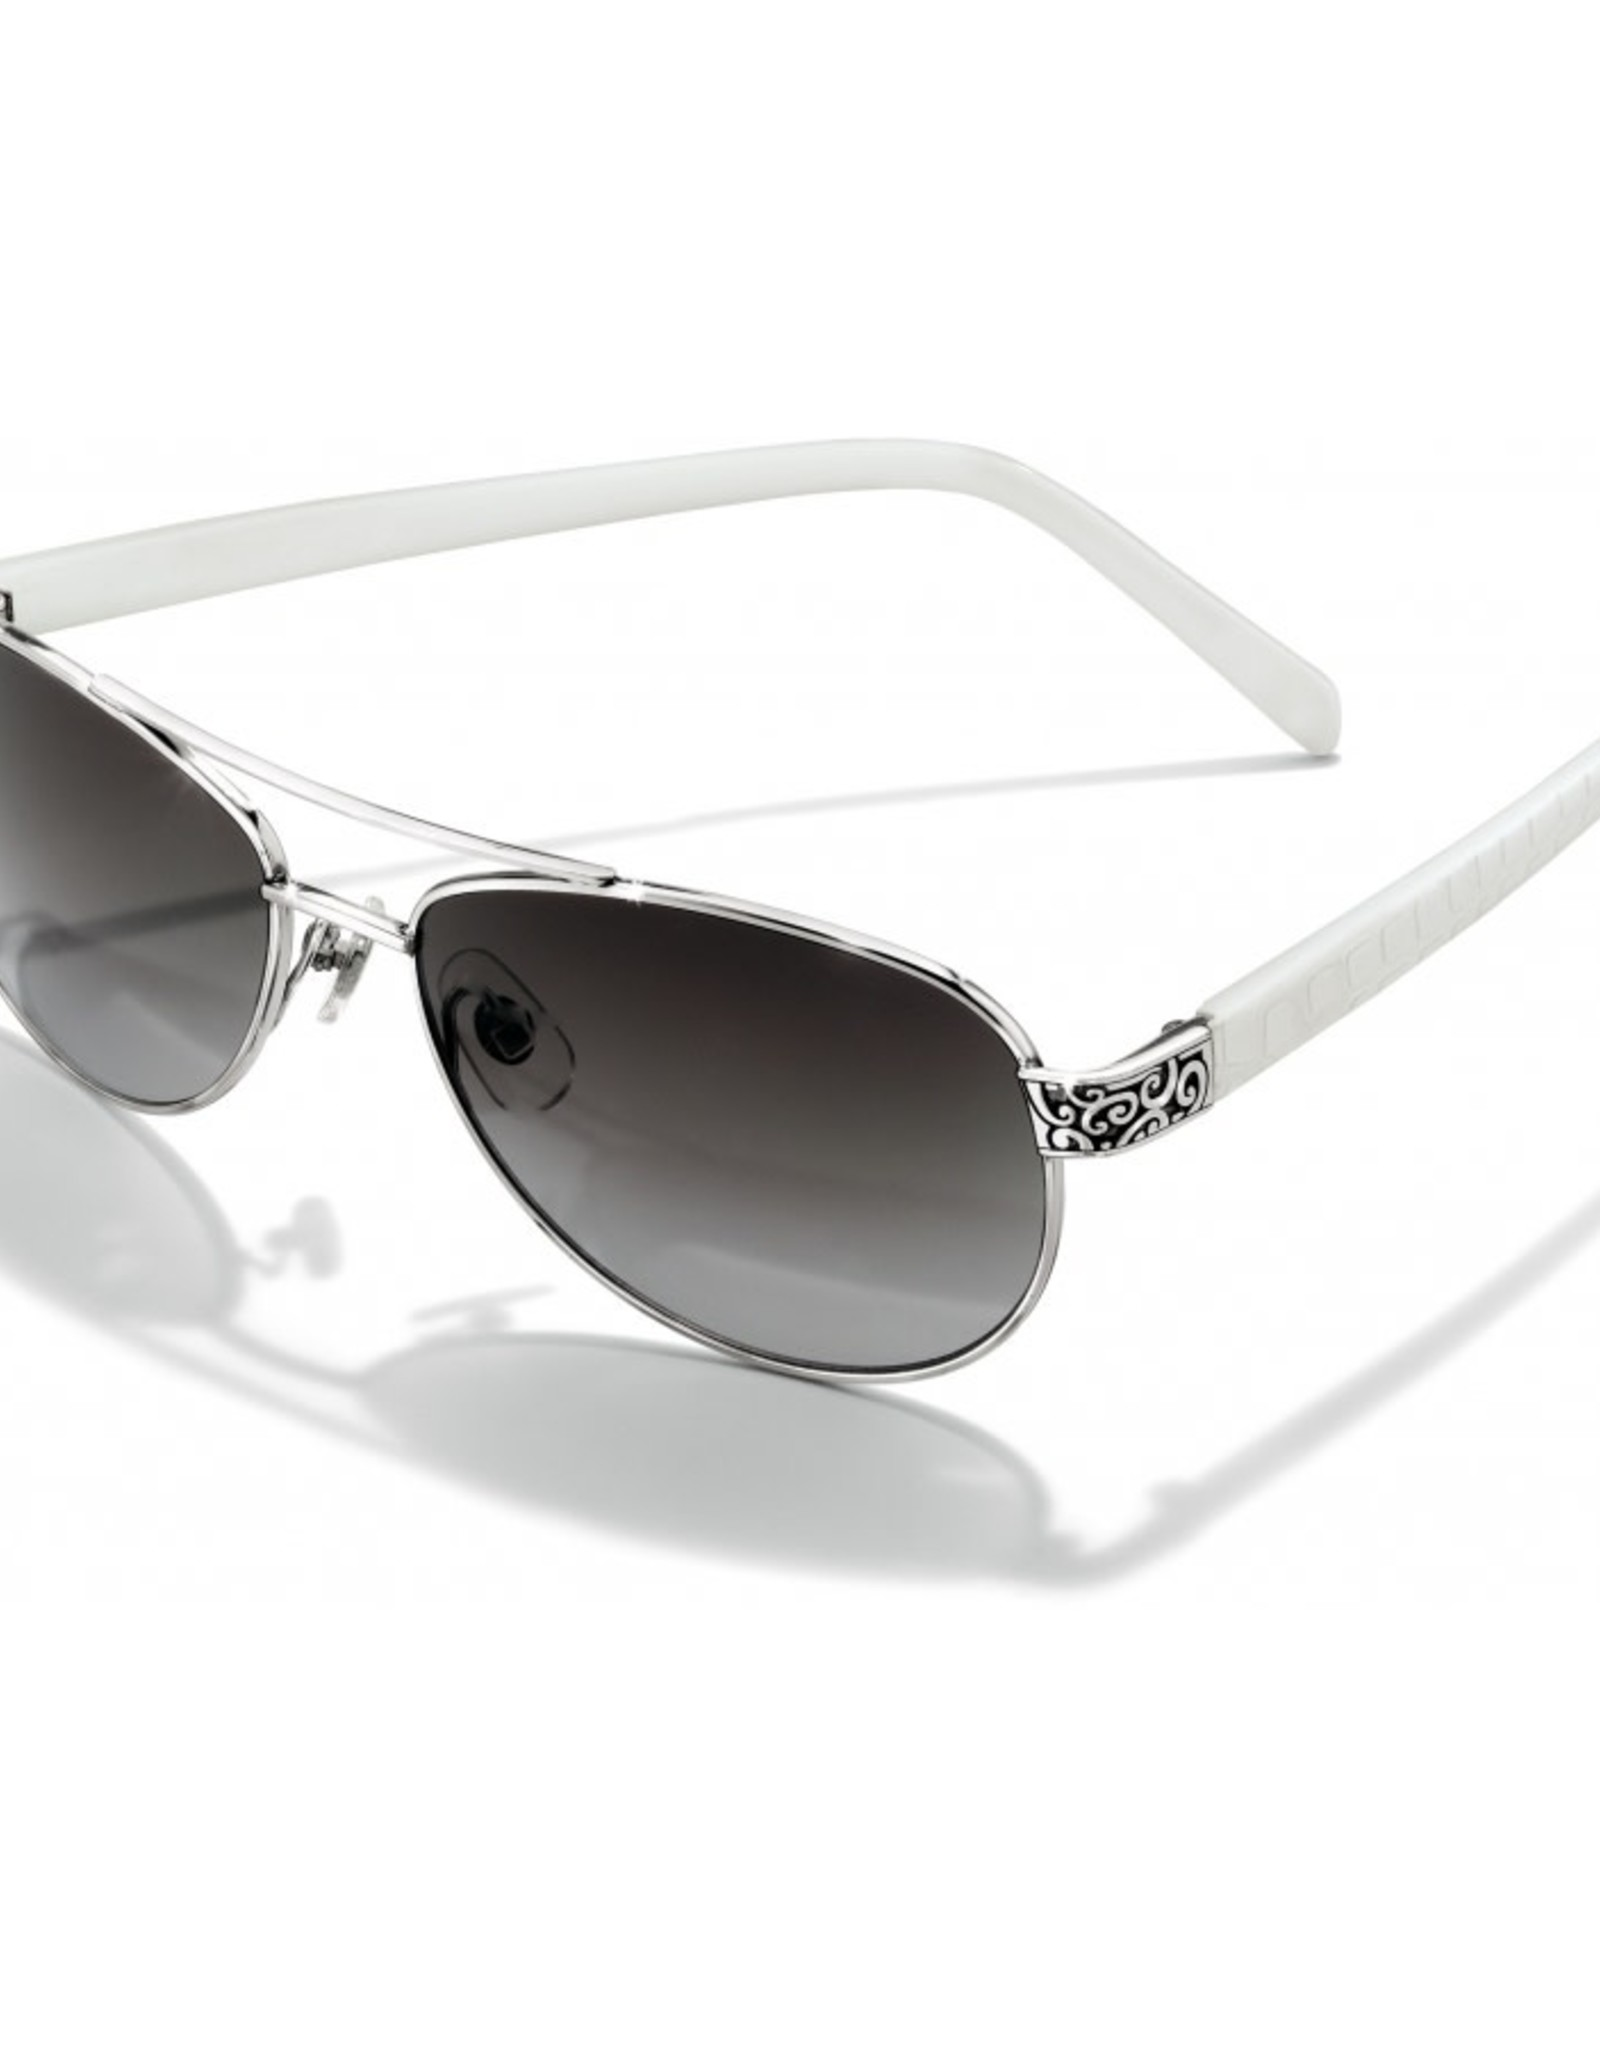 Brighton Brighton Sunglasses Sugar Shack White